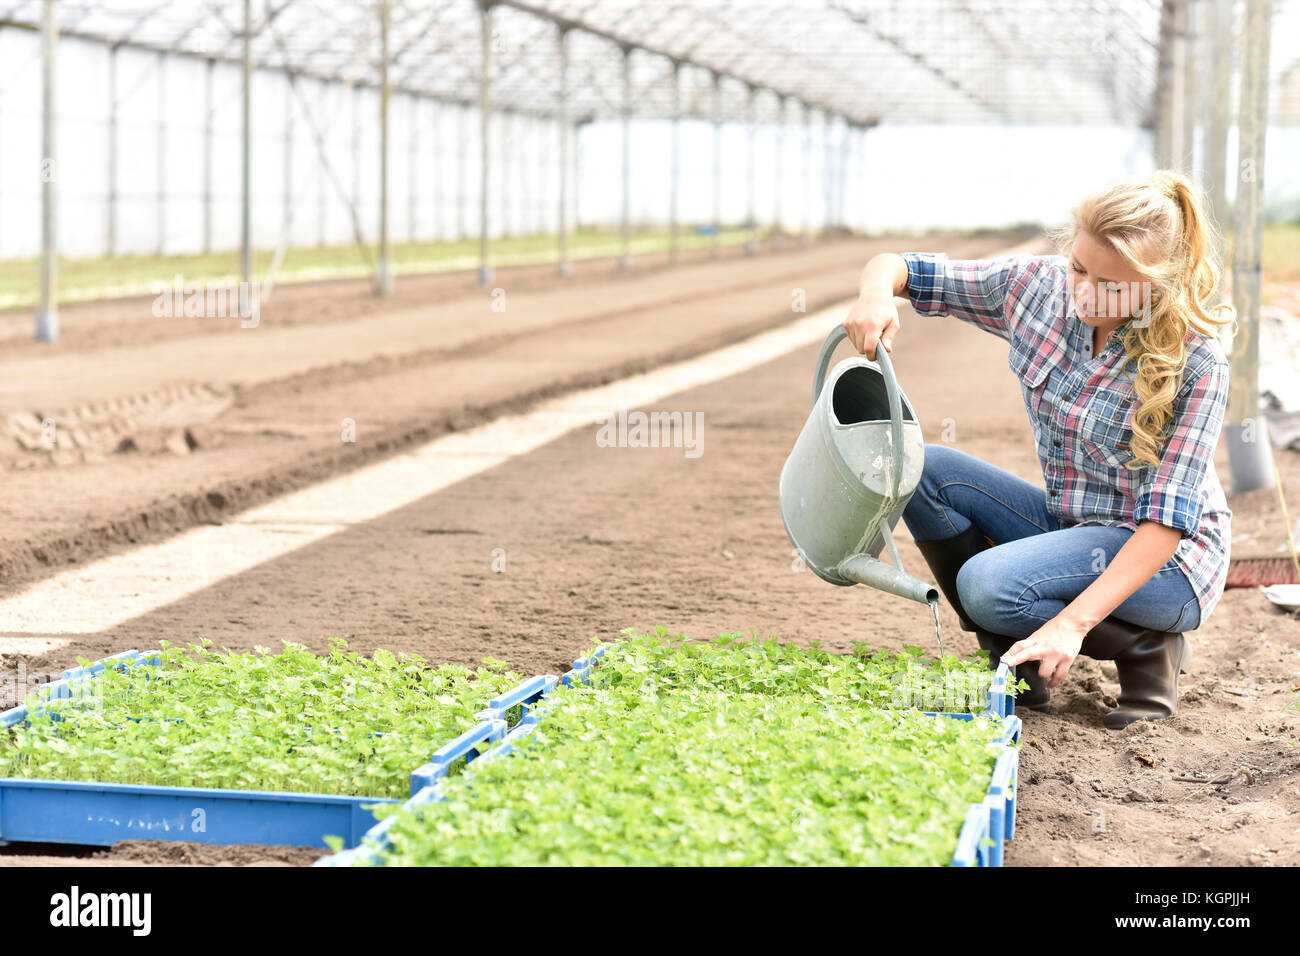 Young woman watering organic lettuce in greenhouse - Stock Image